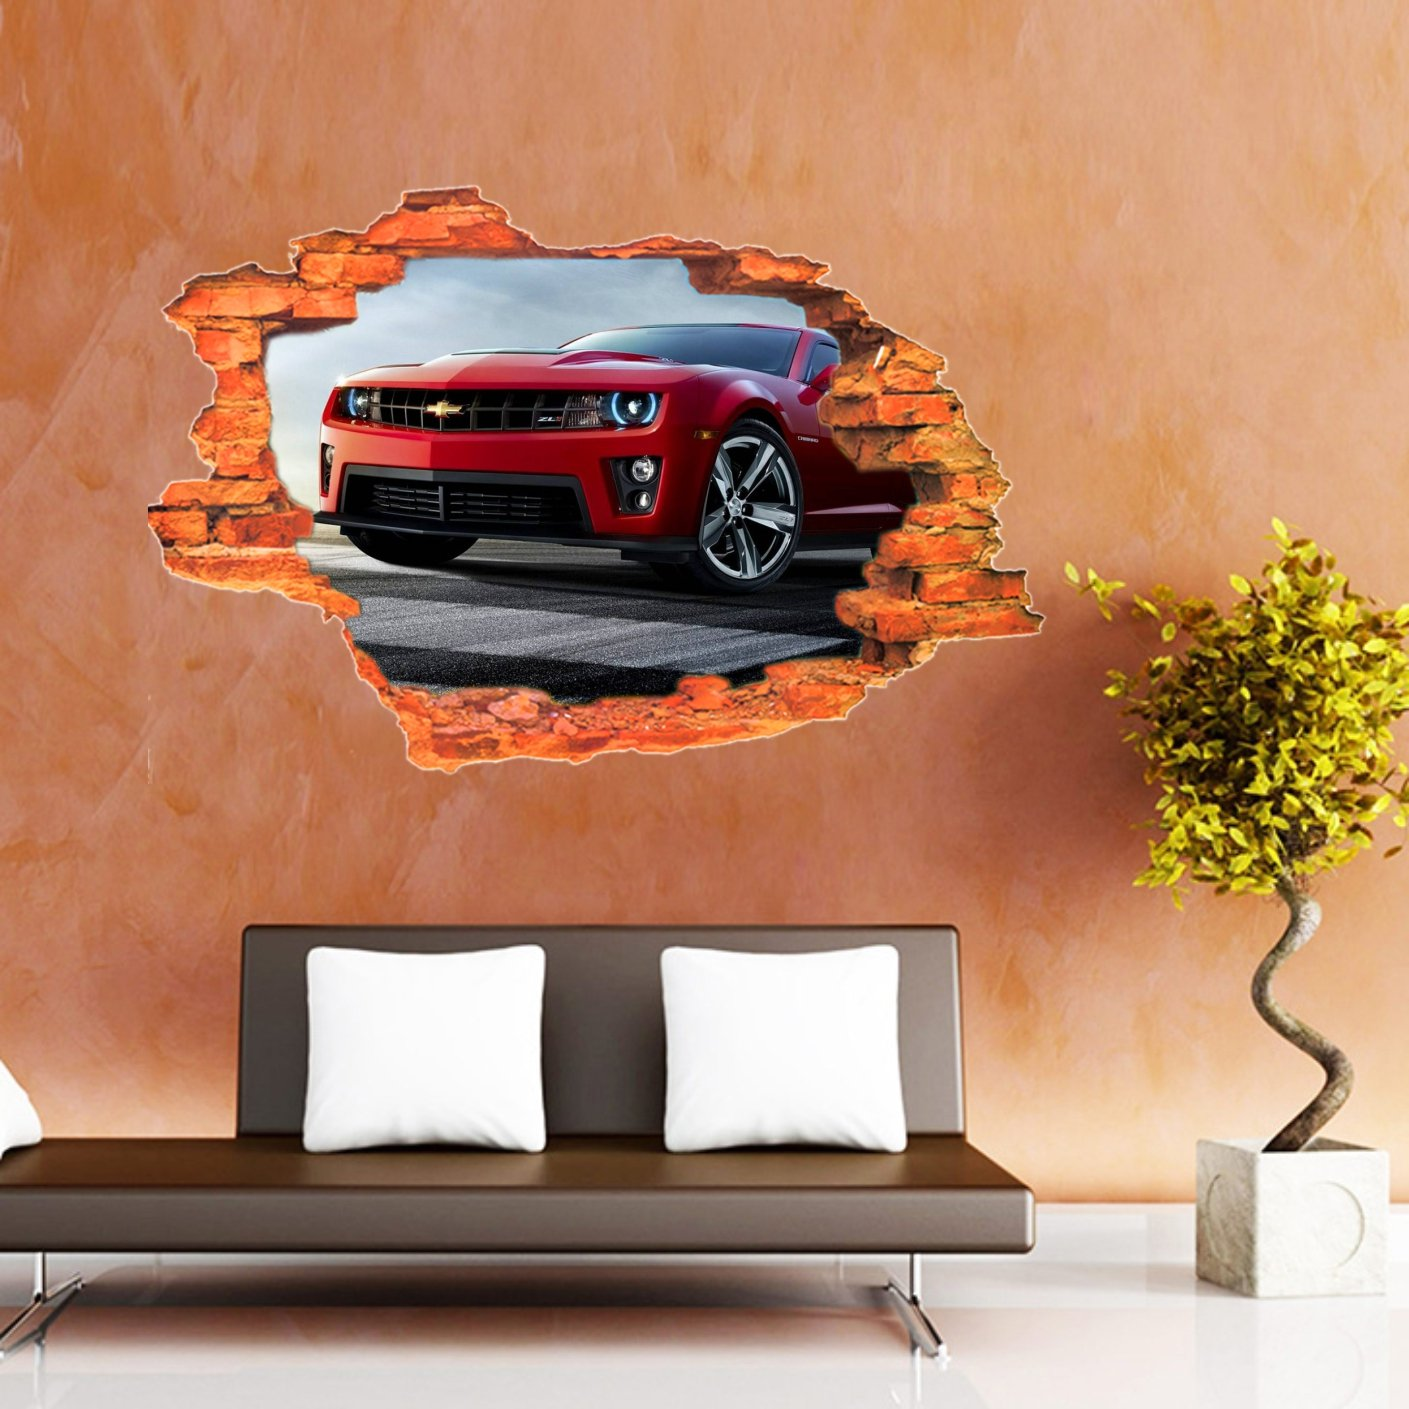 Buy Creatick Studio Red Car 3d Wall Poster Wallpaper Wall Sticker Home Decor Stickers 73 66 Cm X 48 26 Cm Online At Low Prices In India Amazon In